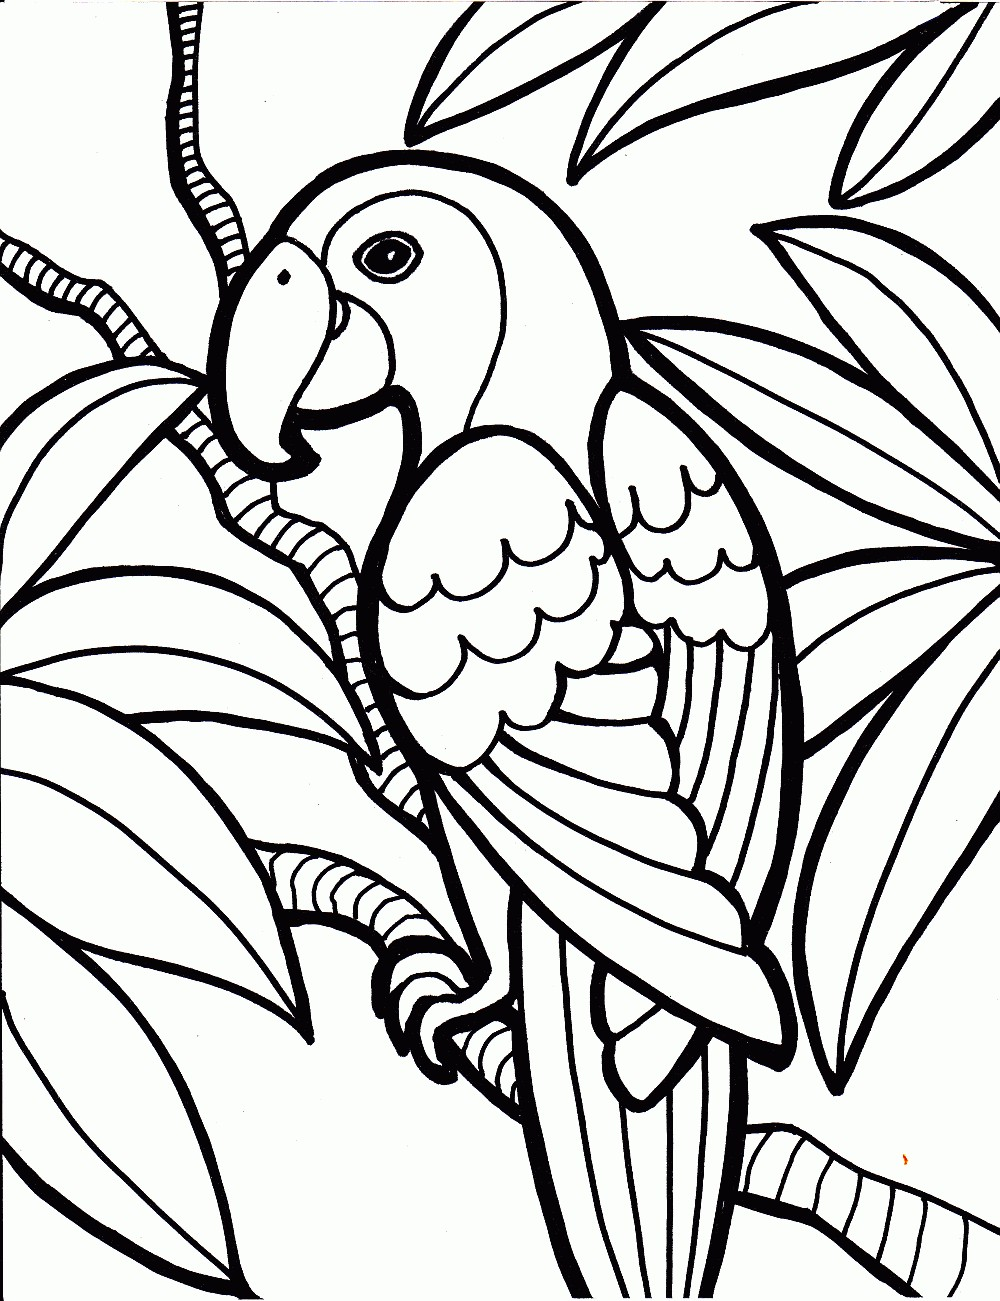 kids coloring pages birds - photo#7